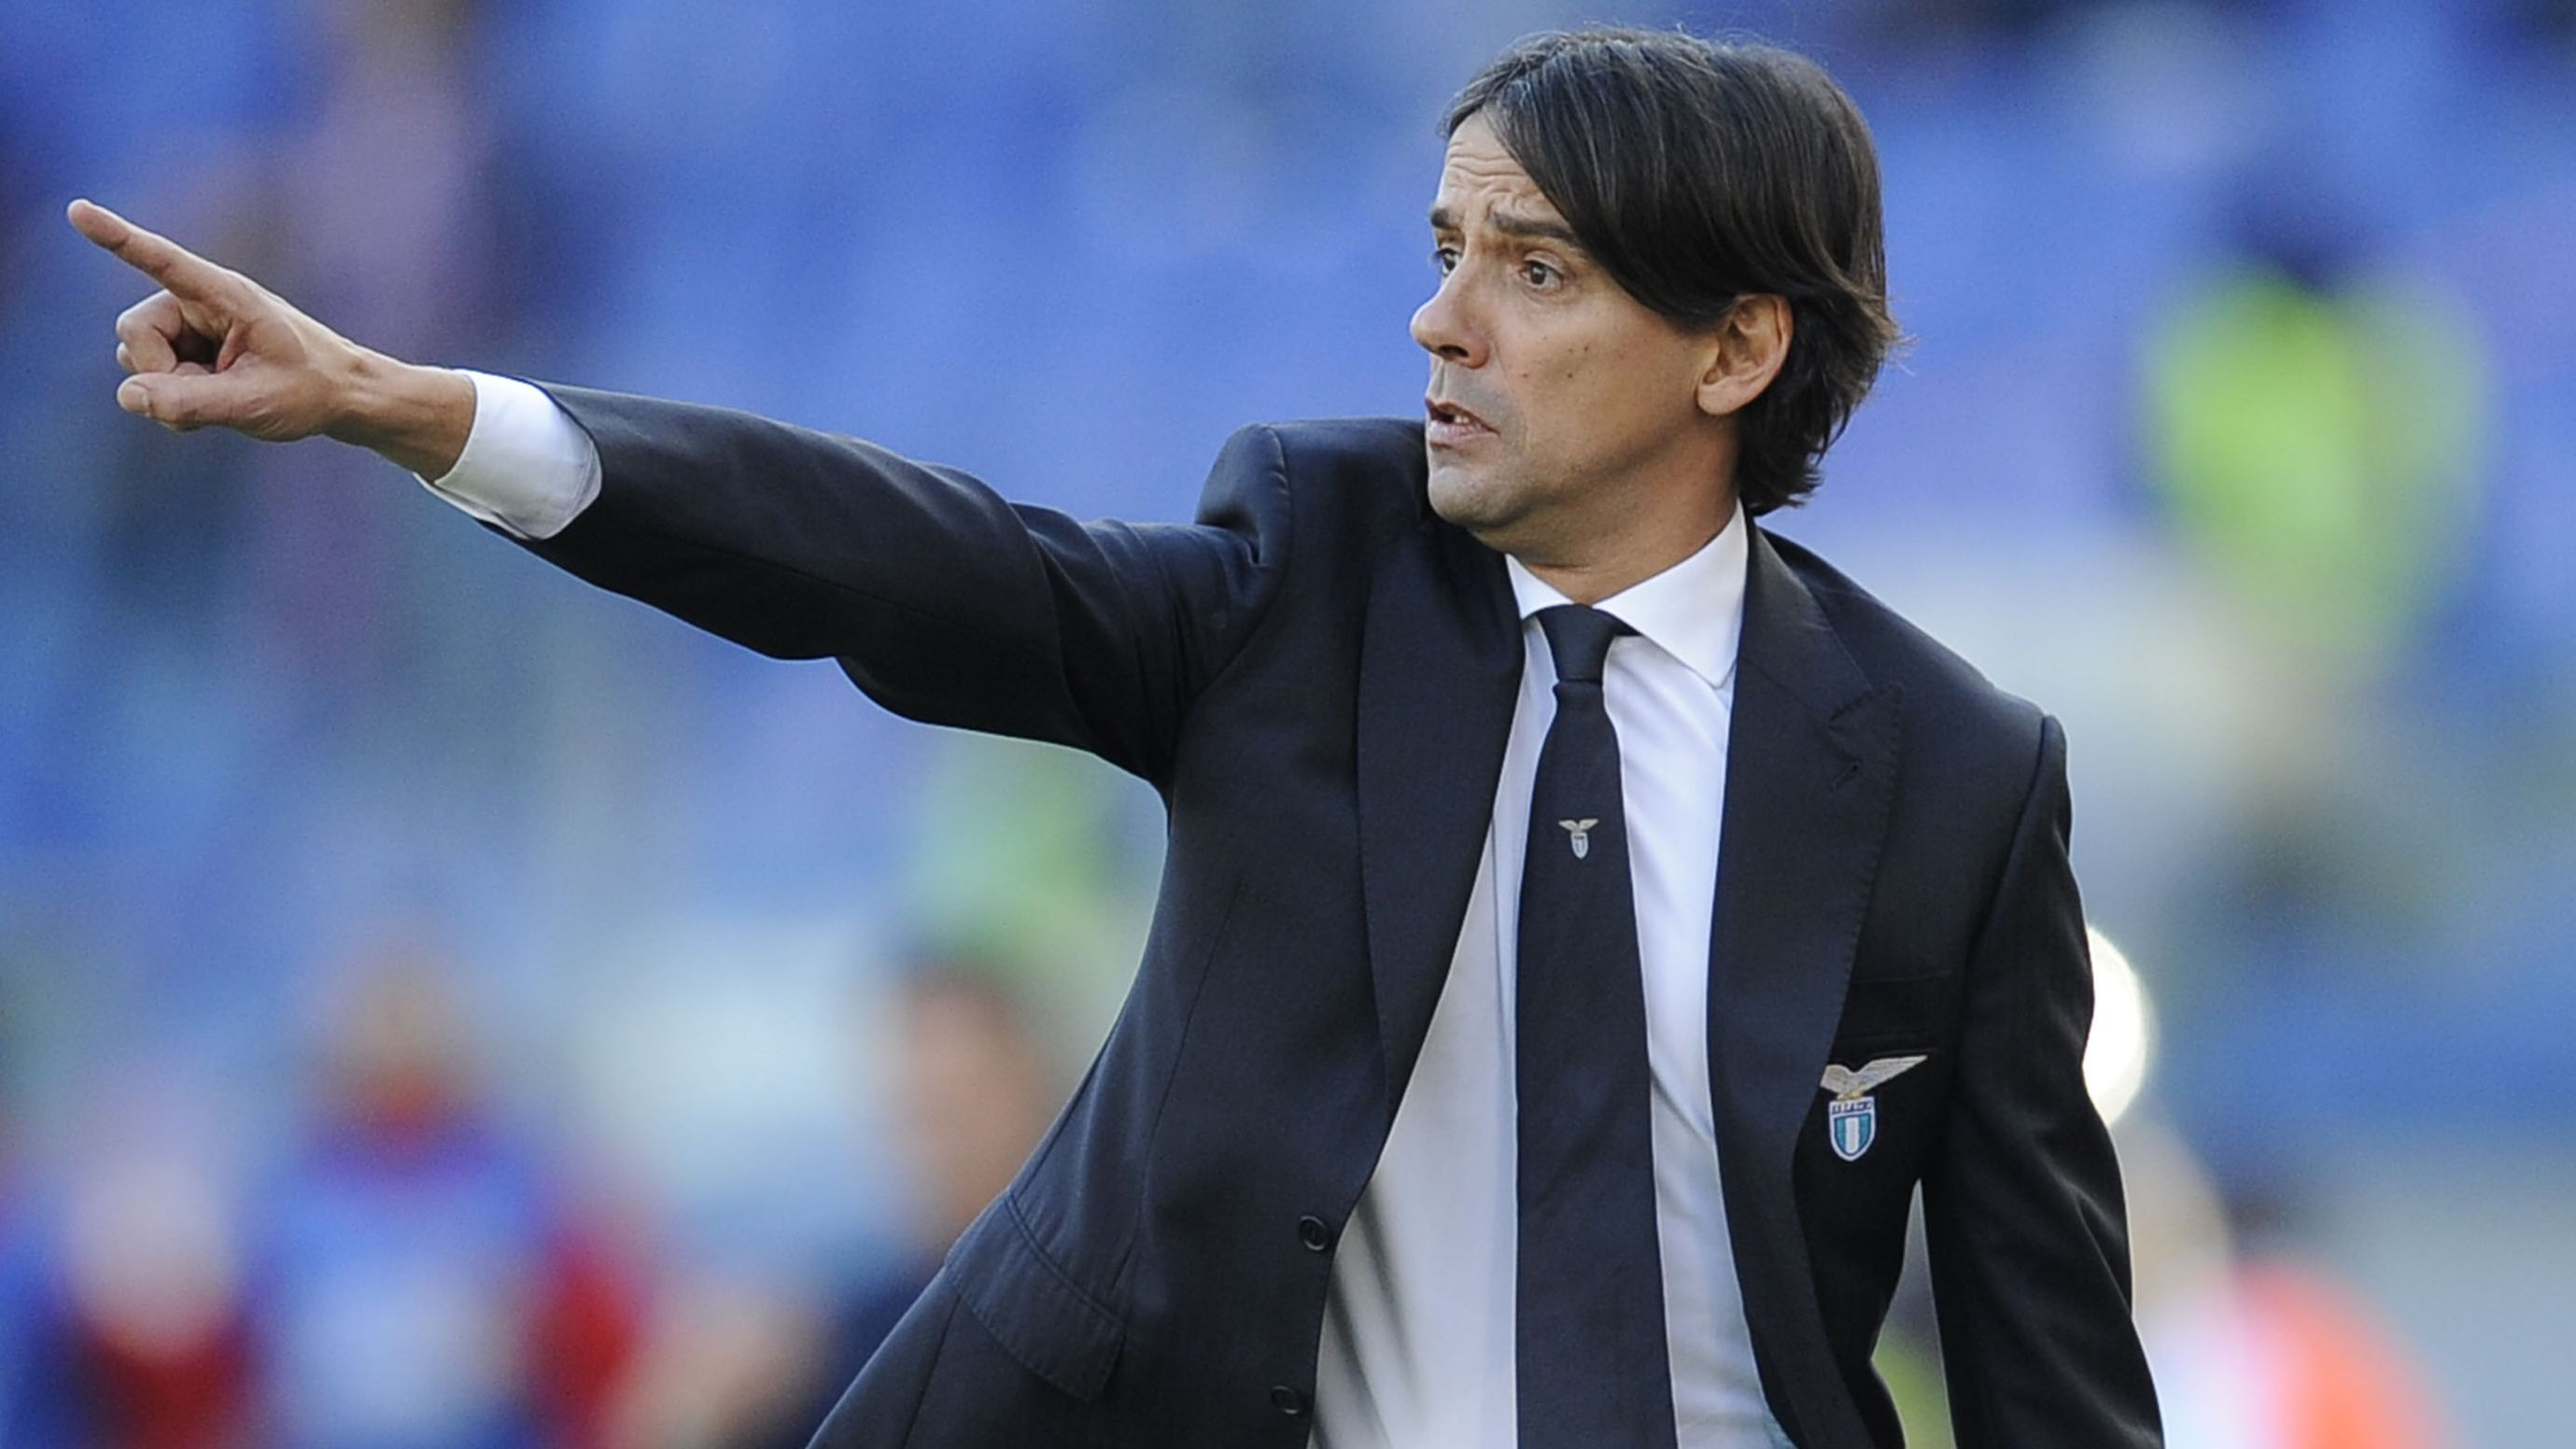 S. Inzaghi: